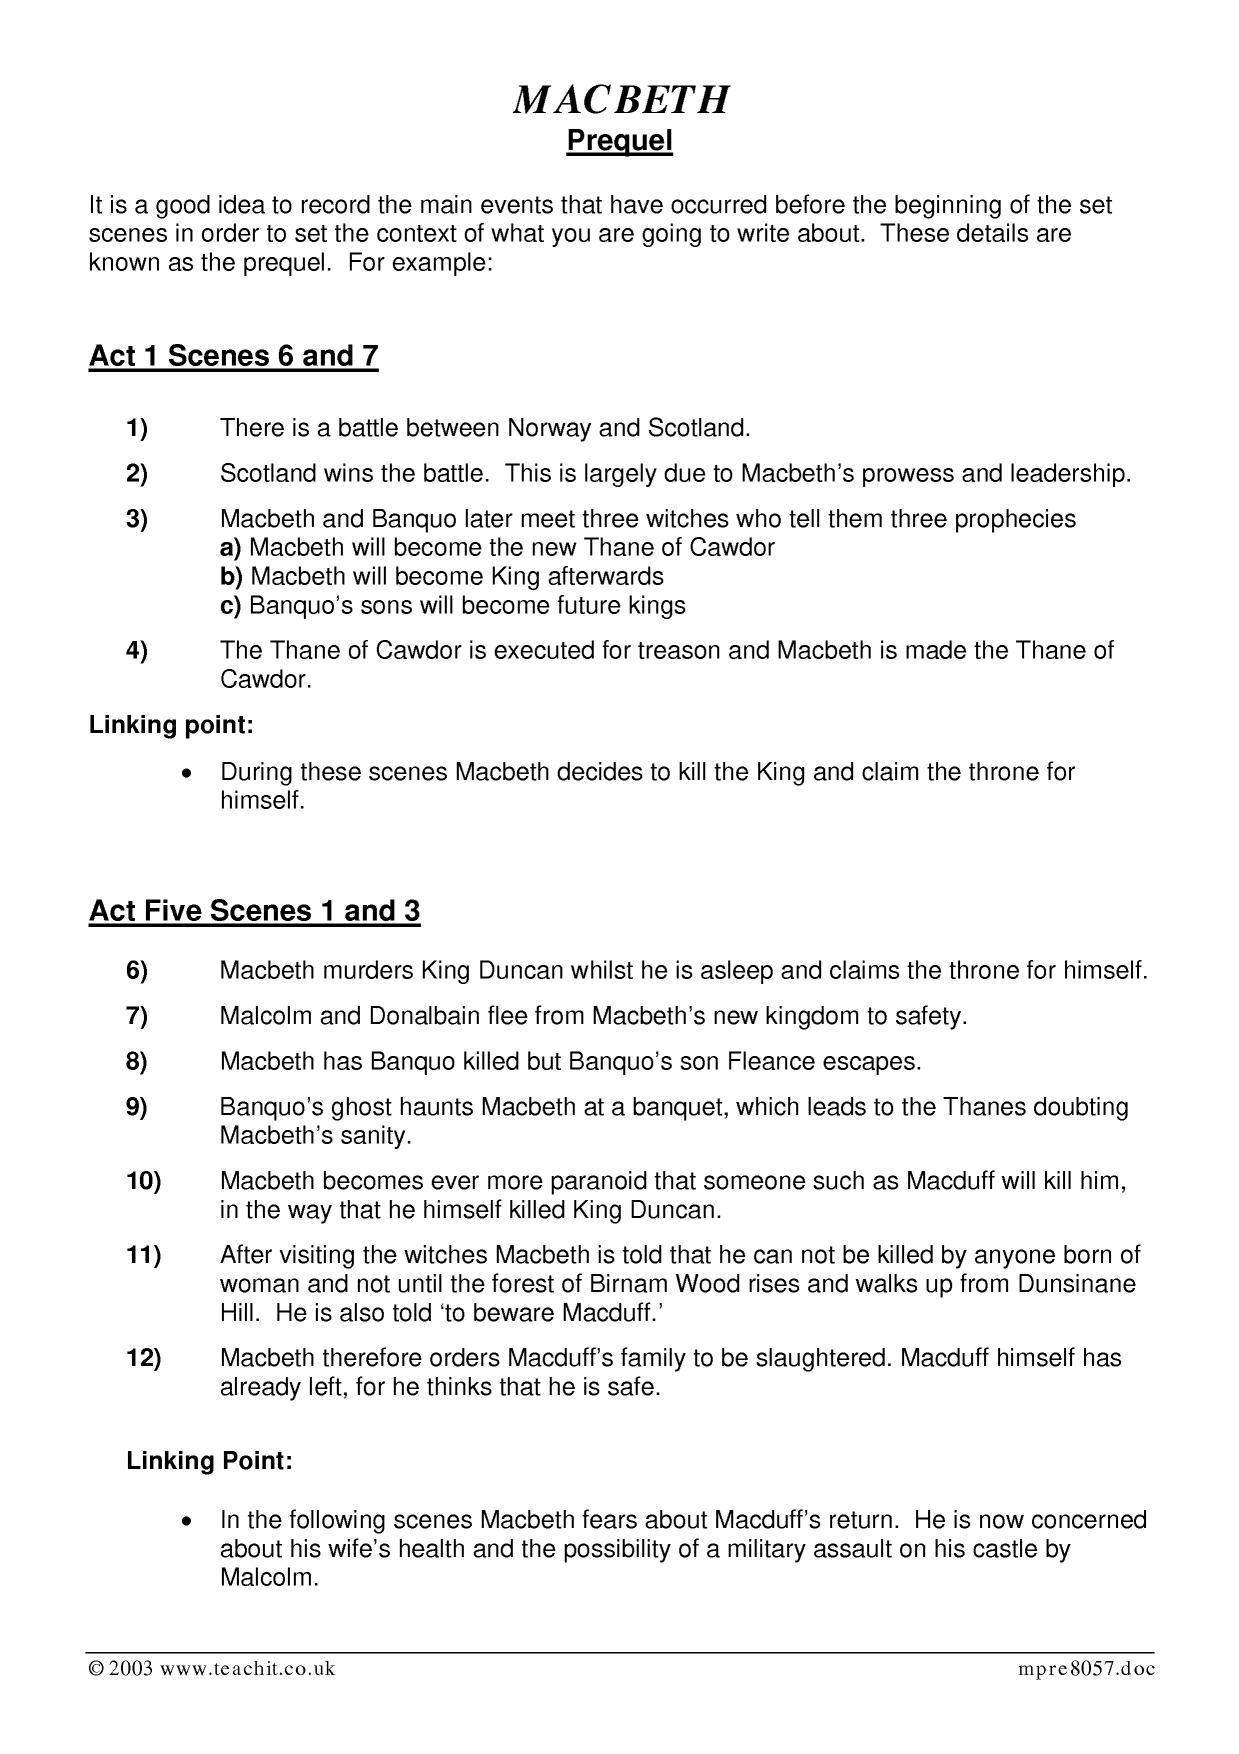 shakespeares use of language essay Techniques used in shakespeares macbeth essaysin shakespeare's play macbeth, the dramatic techniques of language.